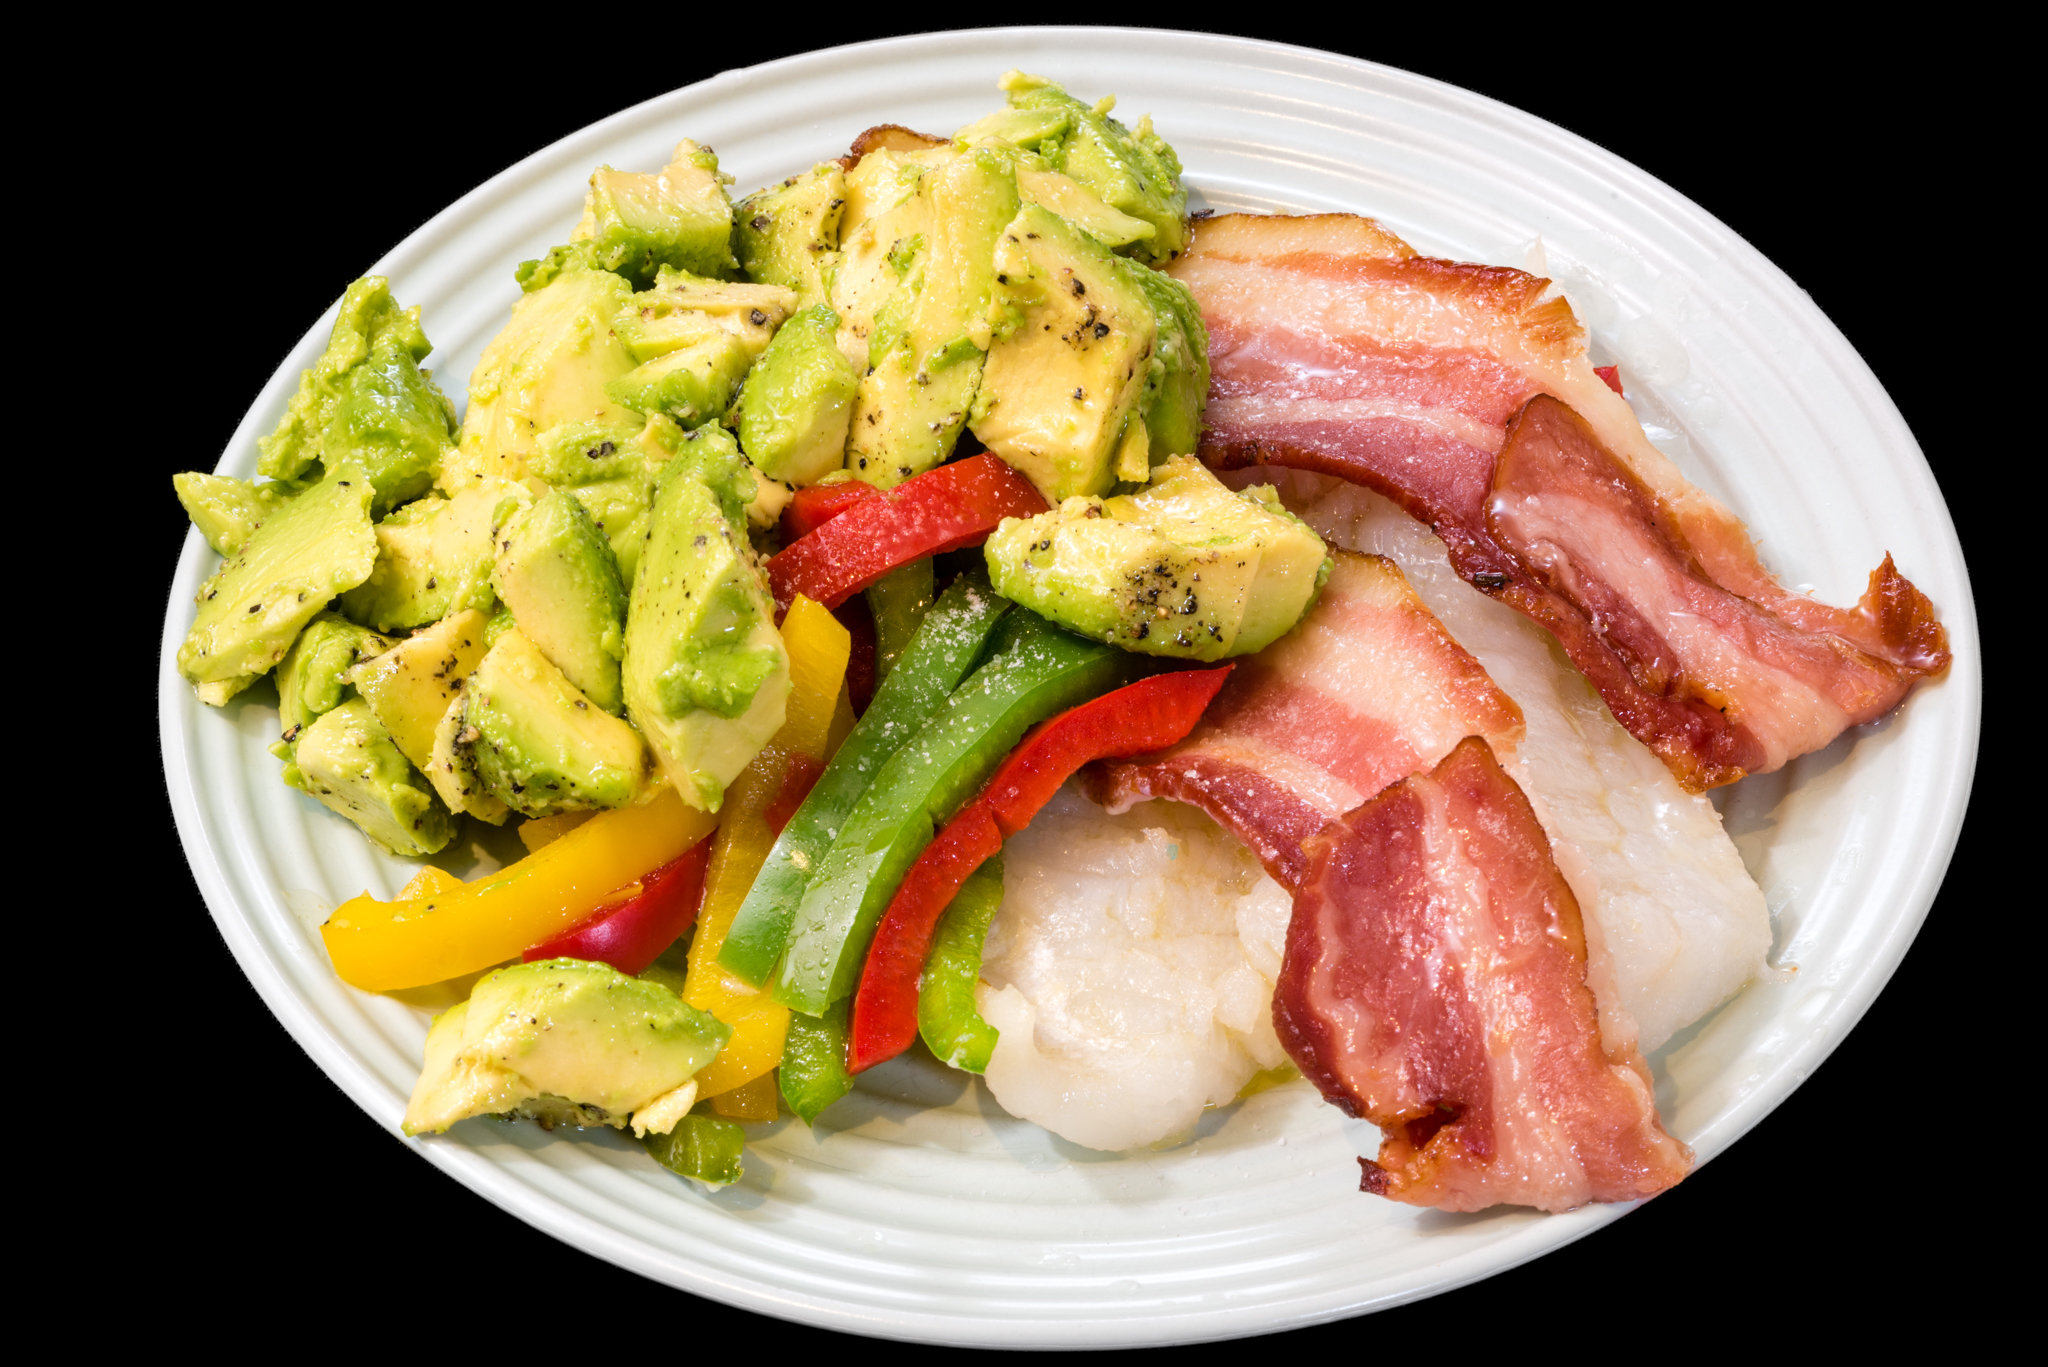 Baked pink ling with bacon, capsicum and avocado